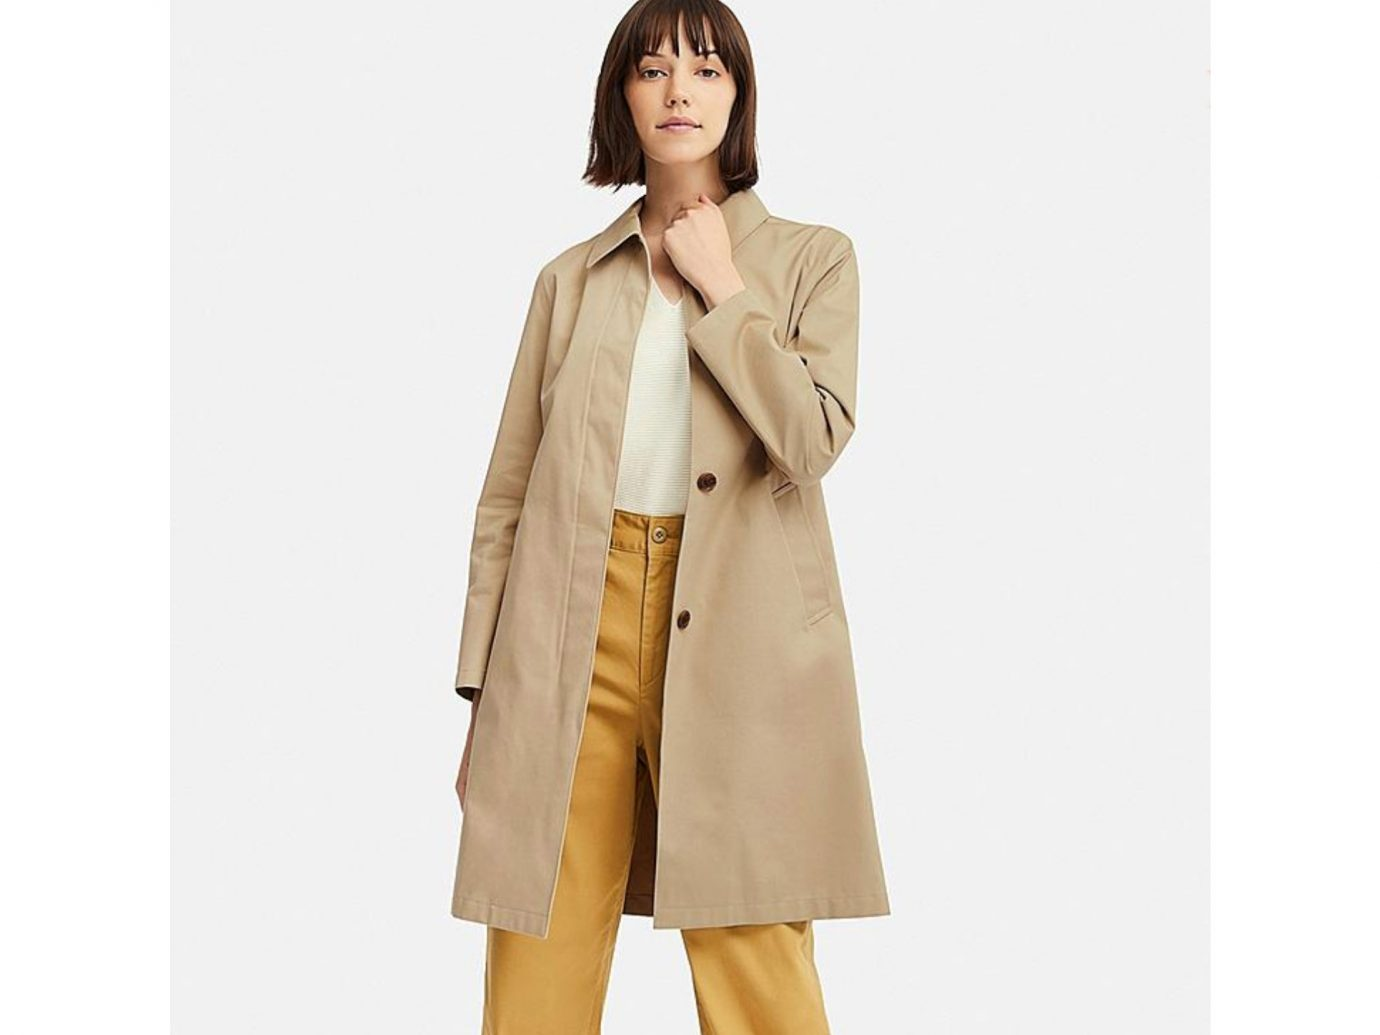 Uniqlo Women's Blocktech Soutien Collar Coat